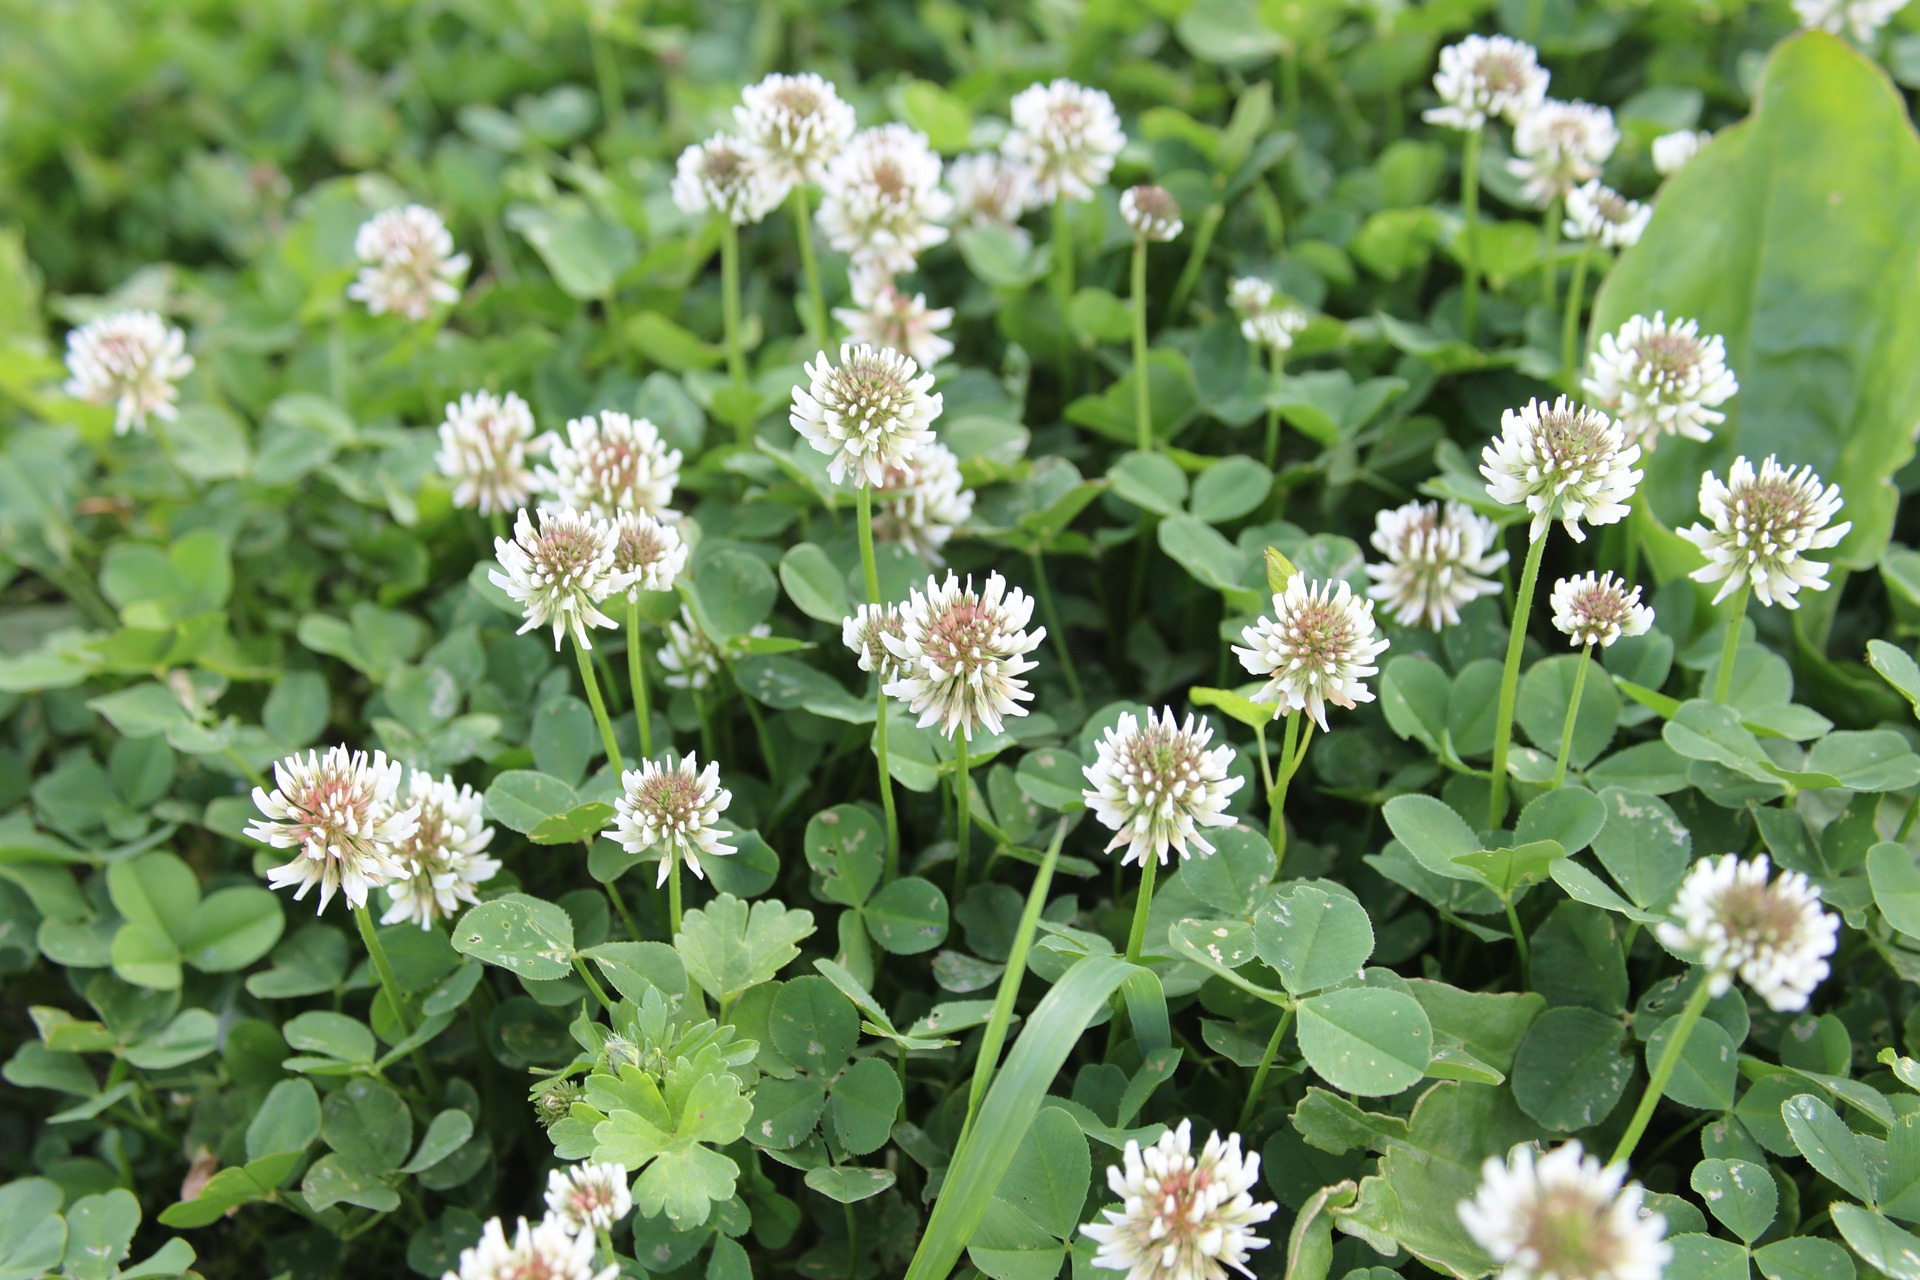 How to get rid of ground moles - Clover Comeback